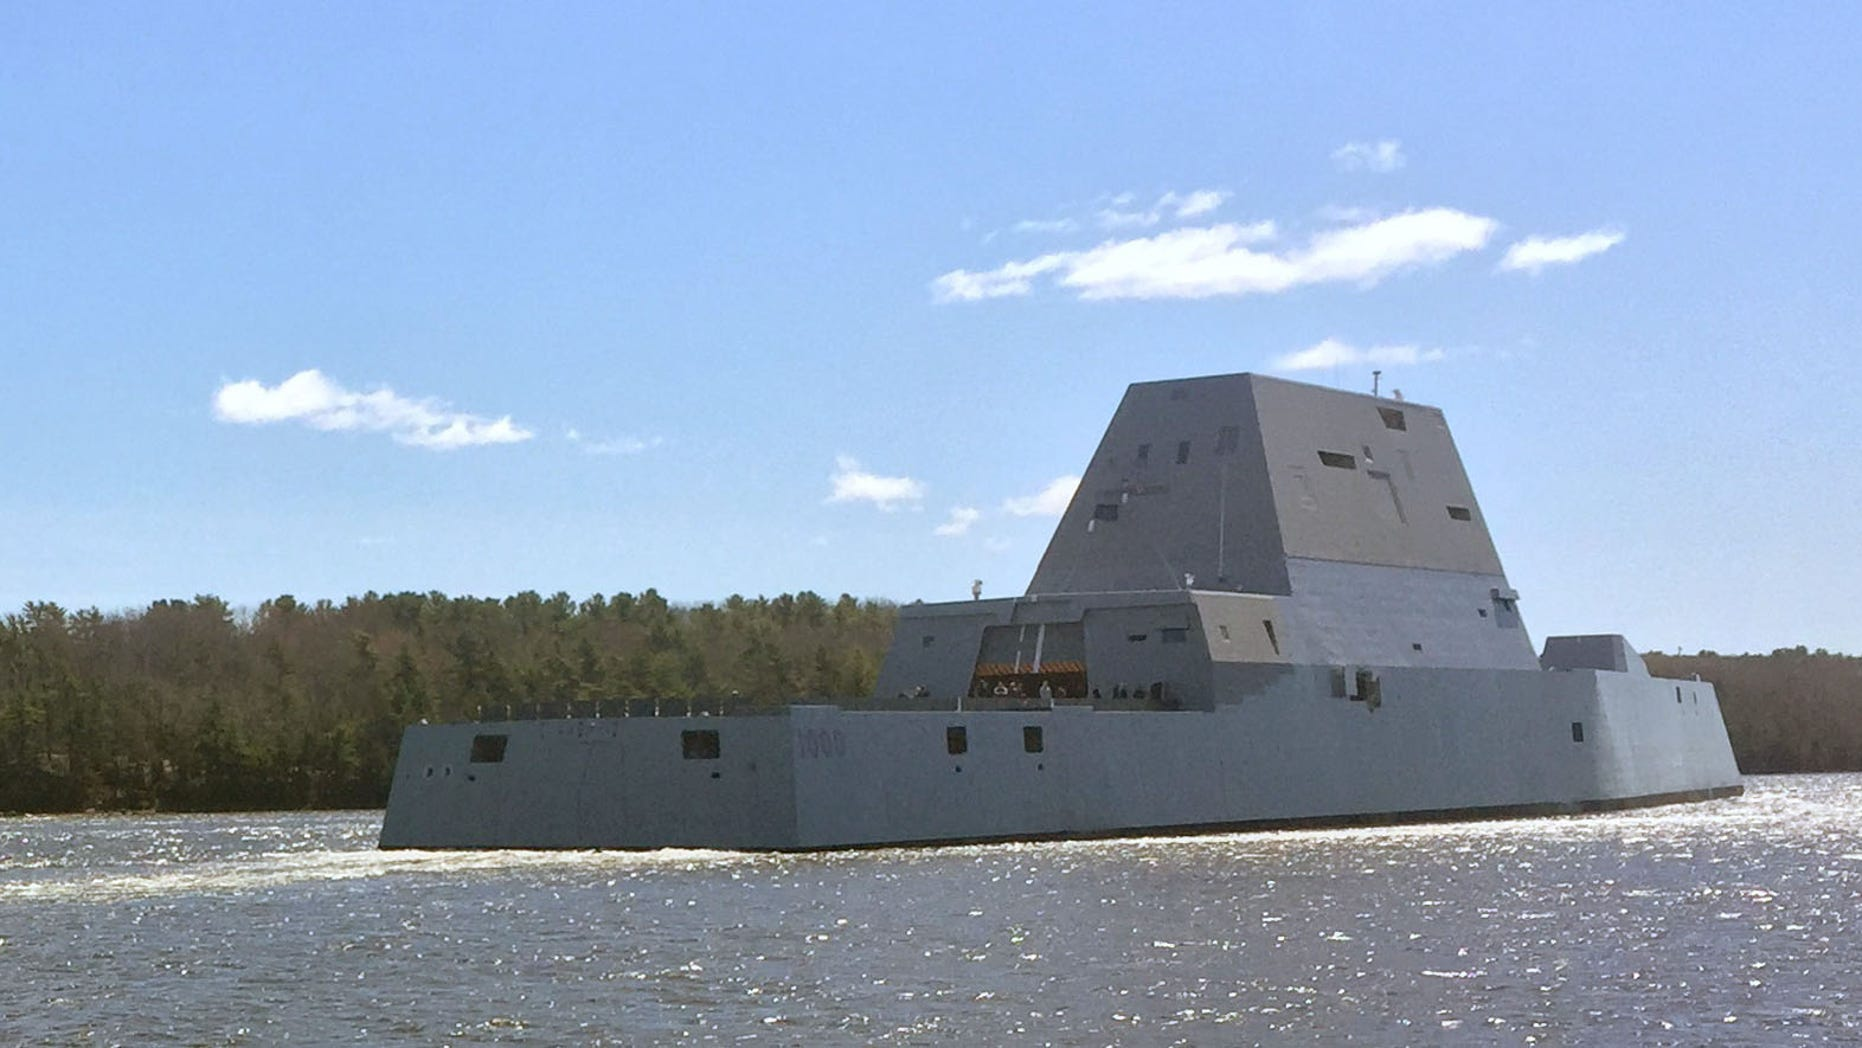 The future guided-missile destroyer USS Zumwalt departs Bath, Maine, in April 2016 to conduct acceptance trials with the Navy's Board of Inspection and Survey (INSURV). (Credit: US Navy)